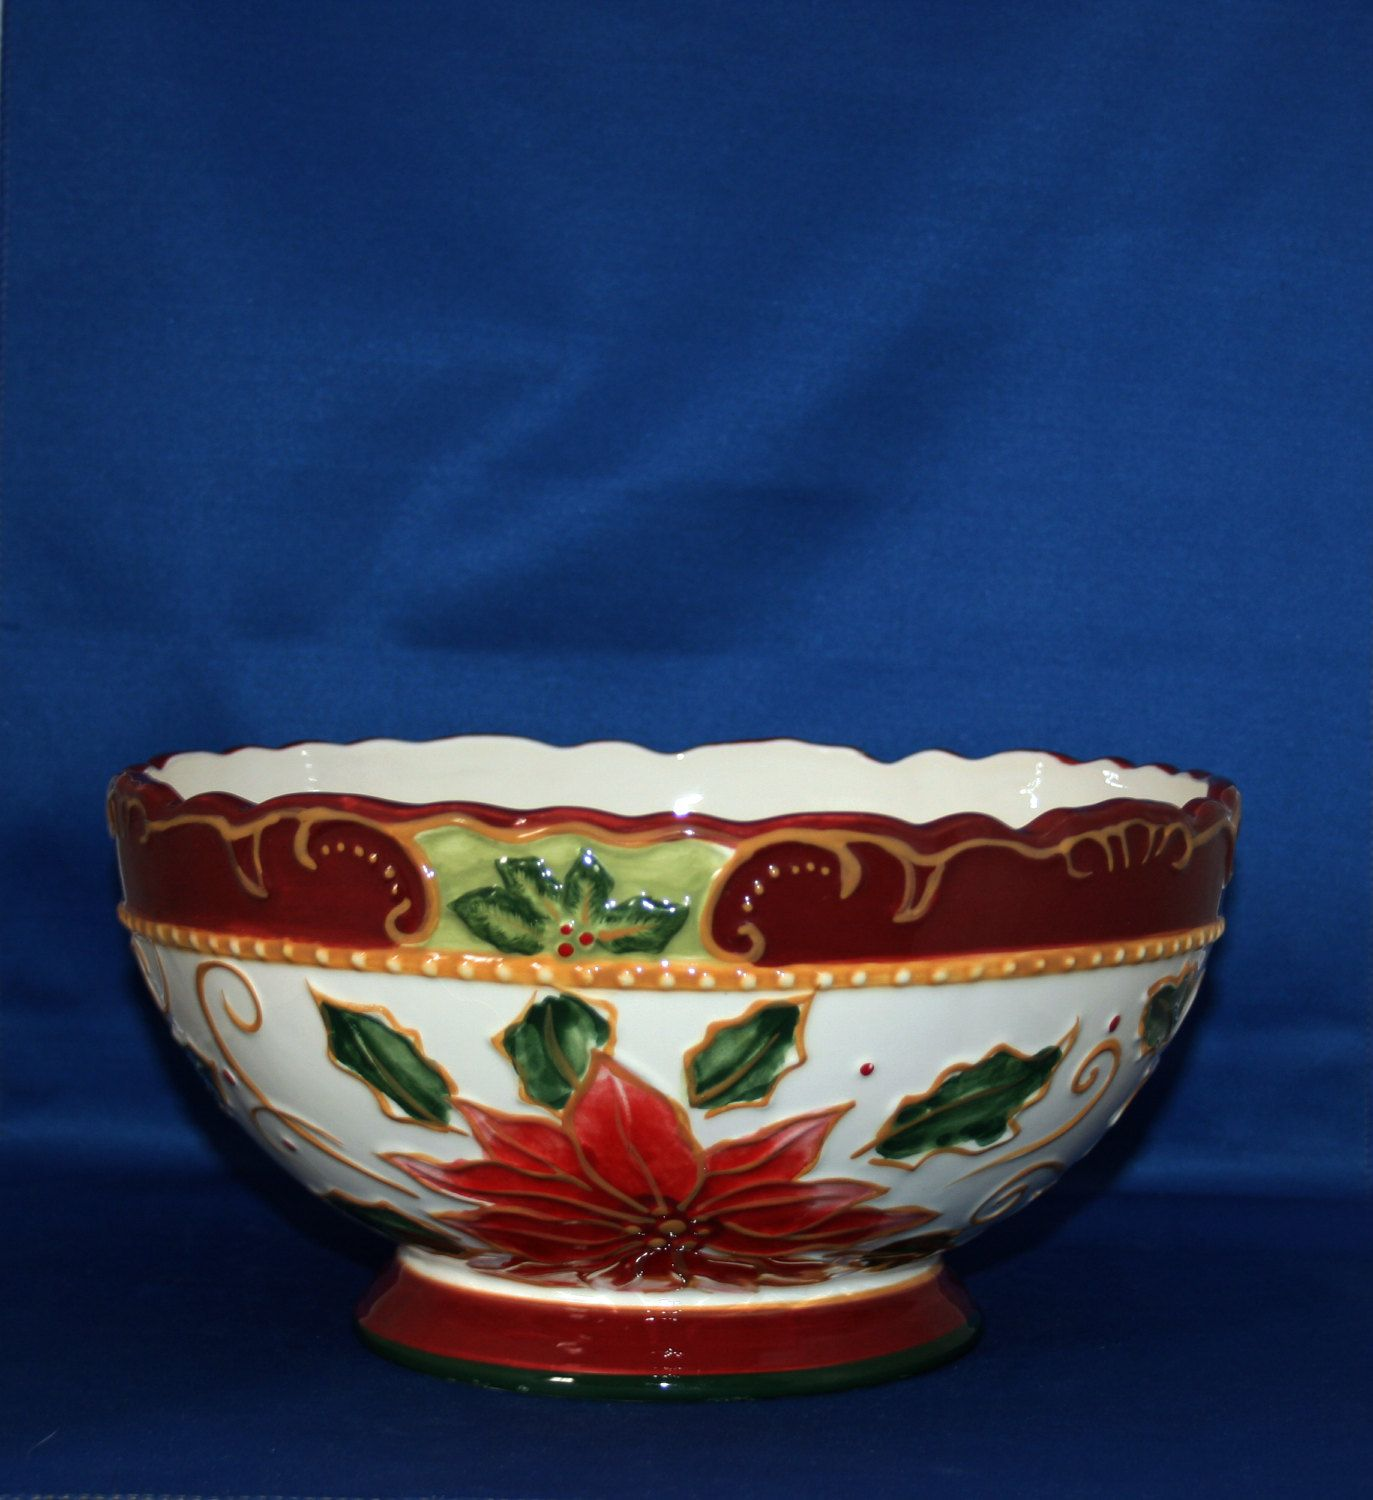 Decorative Ceramic Bowls Vintage Christmas Decorative Ceramic Bowl Poinsettias Holly Leaves